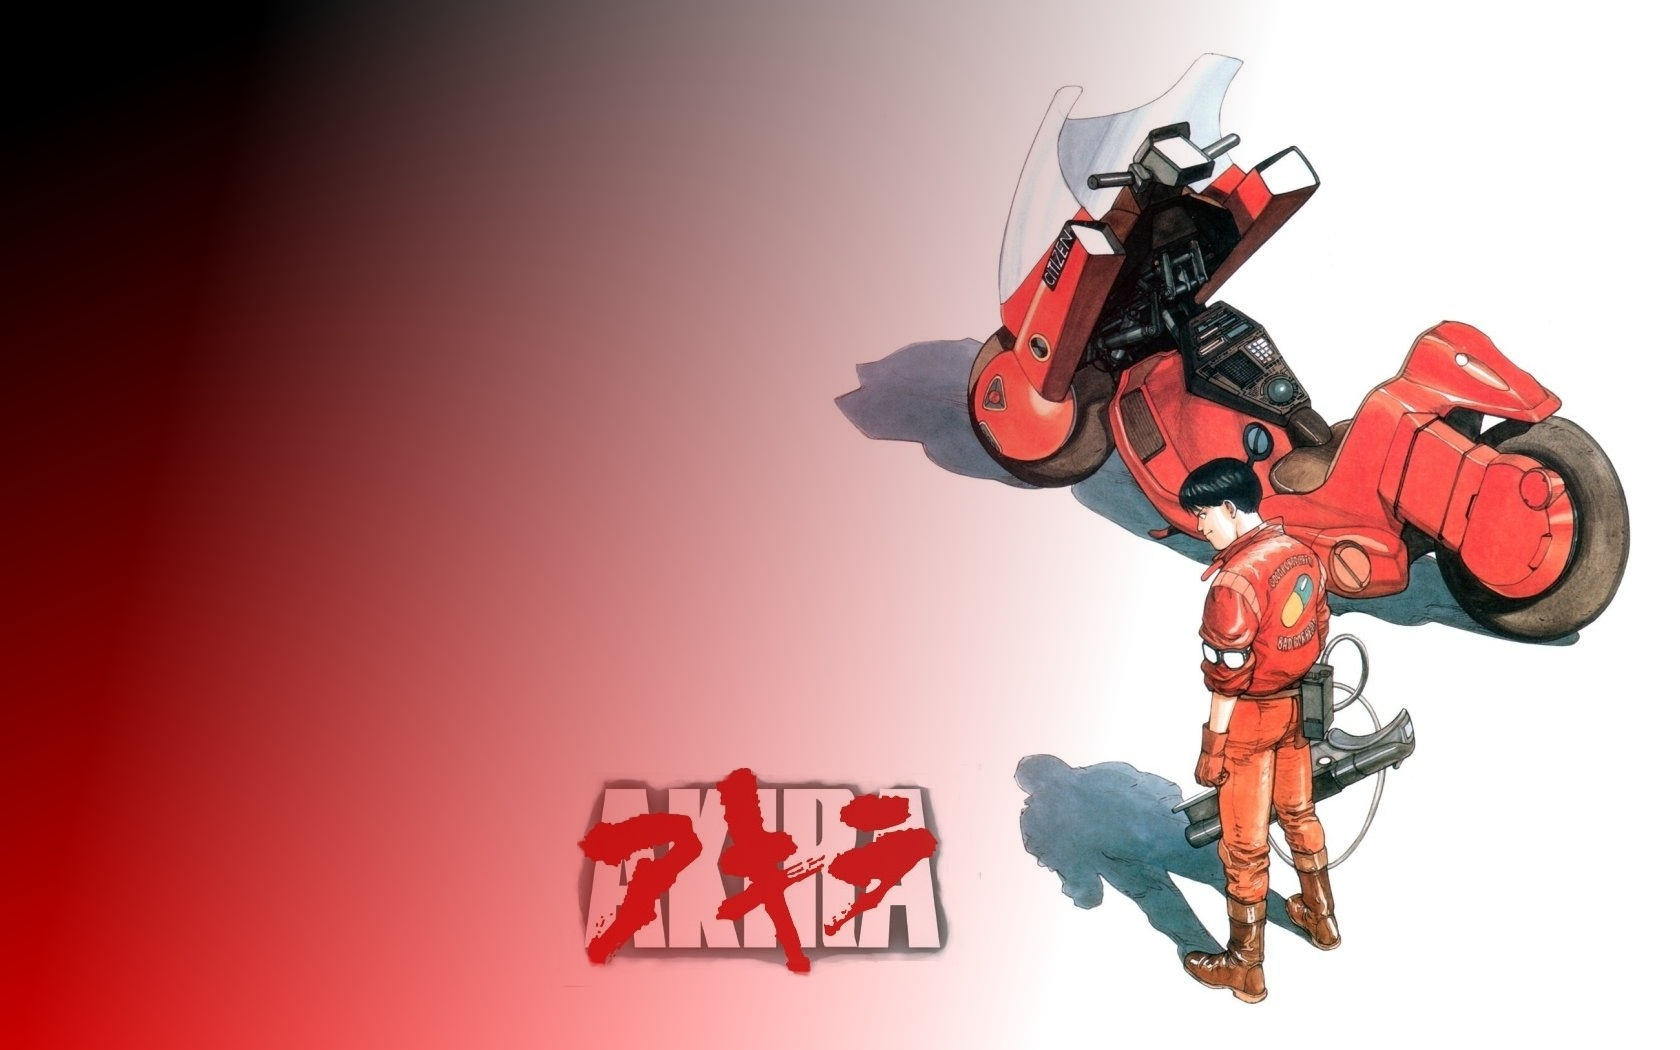 Download Anime Akira Wallpaper 1680x1050 | Wallpoper #177083